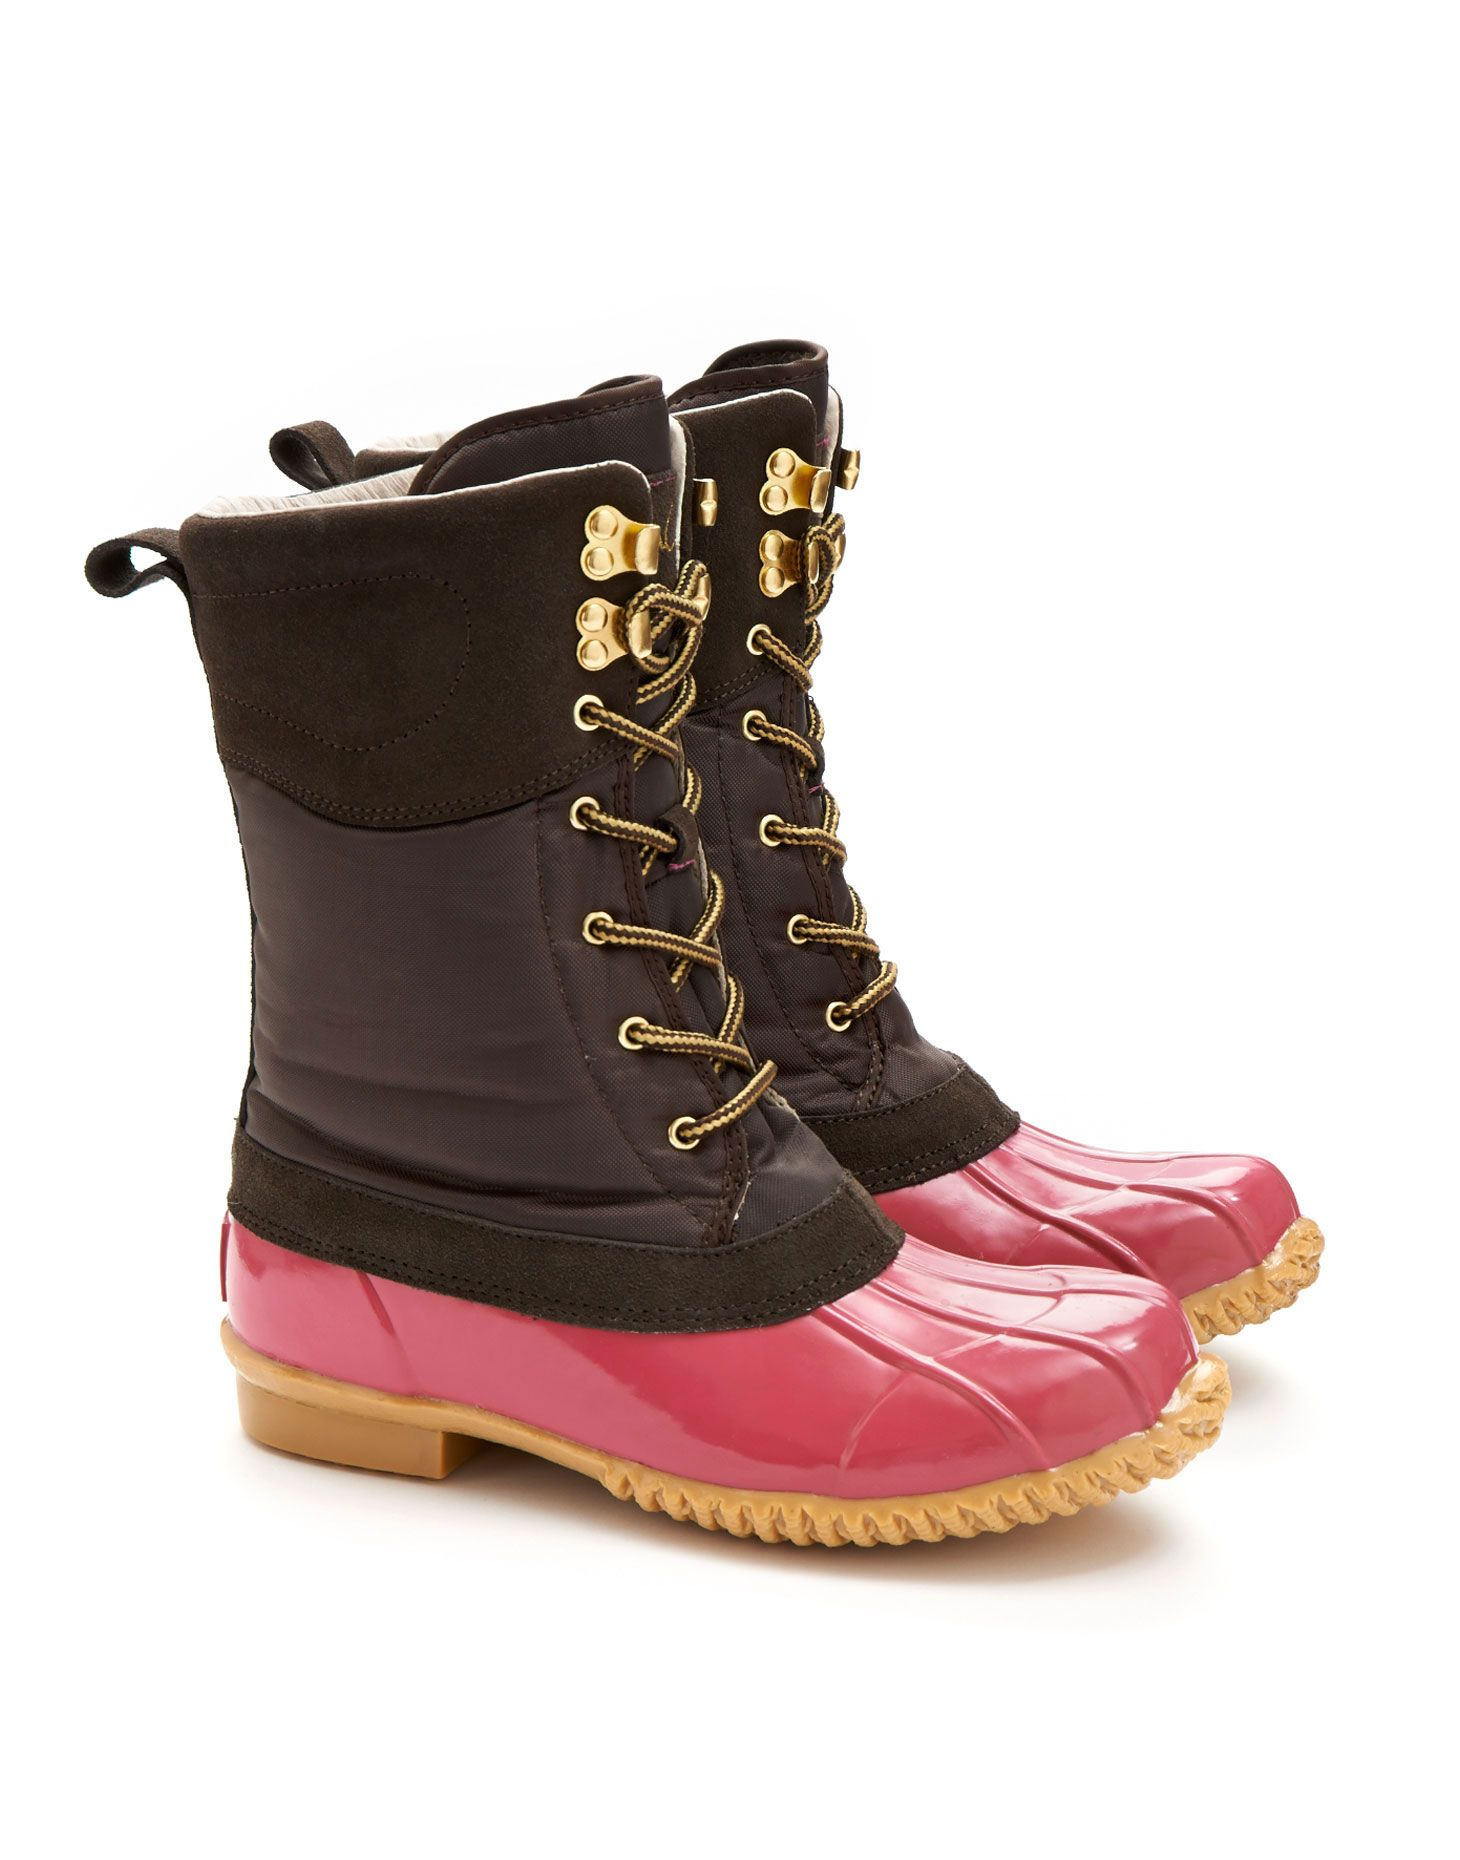 CARRICK Womens Muck Boot - oh yeah, these puppies were made for me ...